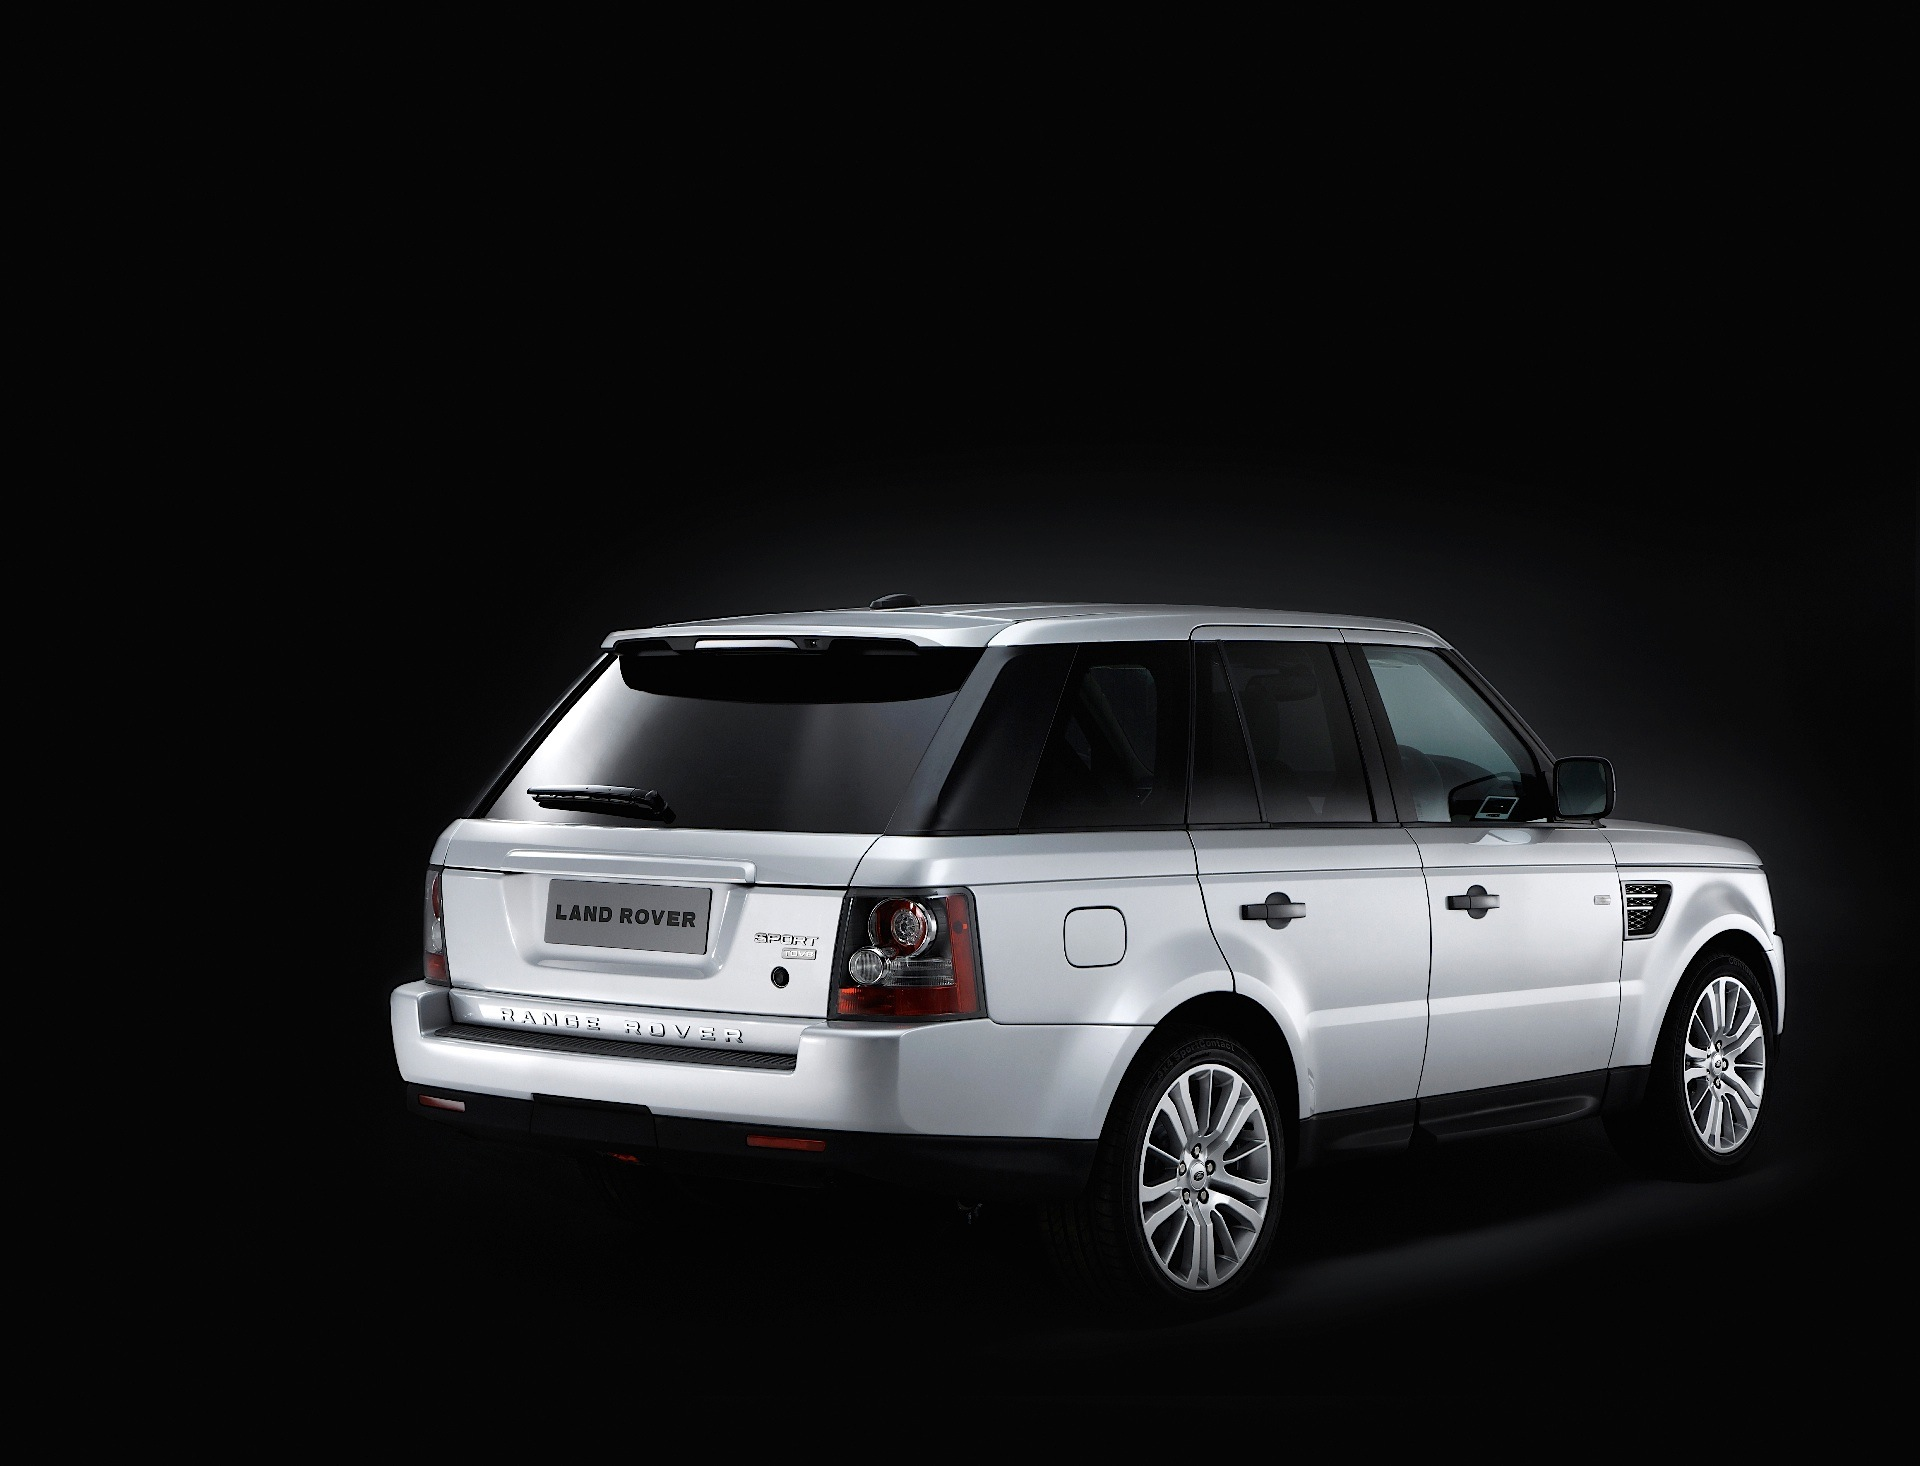 land rover range rover sport specs photos 2009 2010. Black Bedroom Furniture Sets. Home Design Ideas